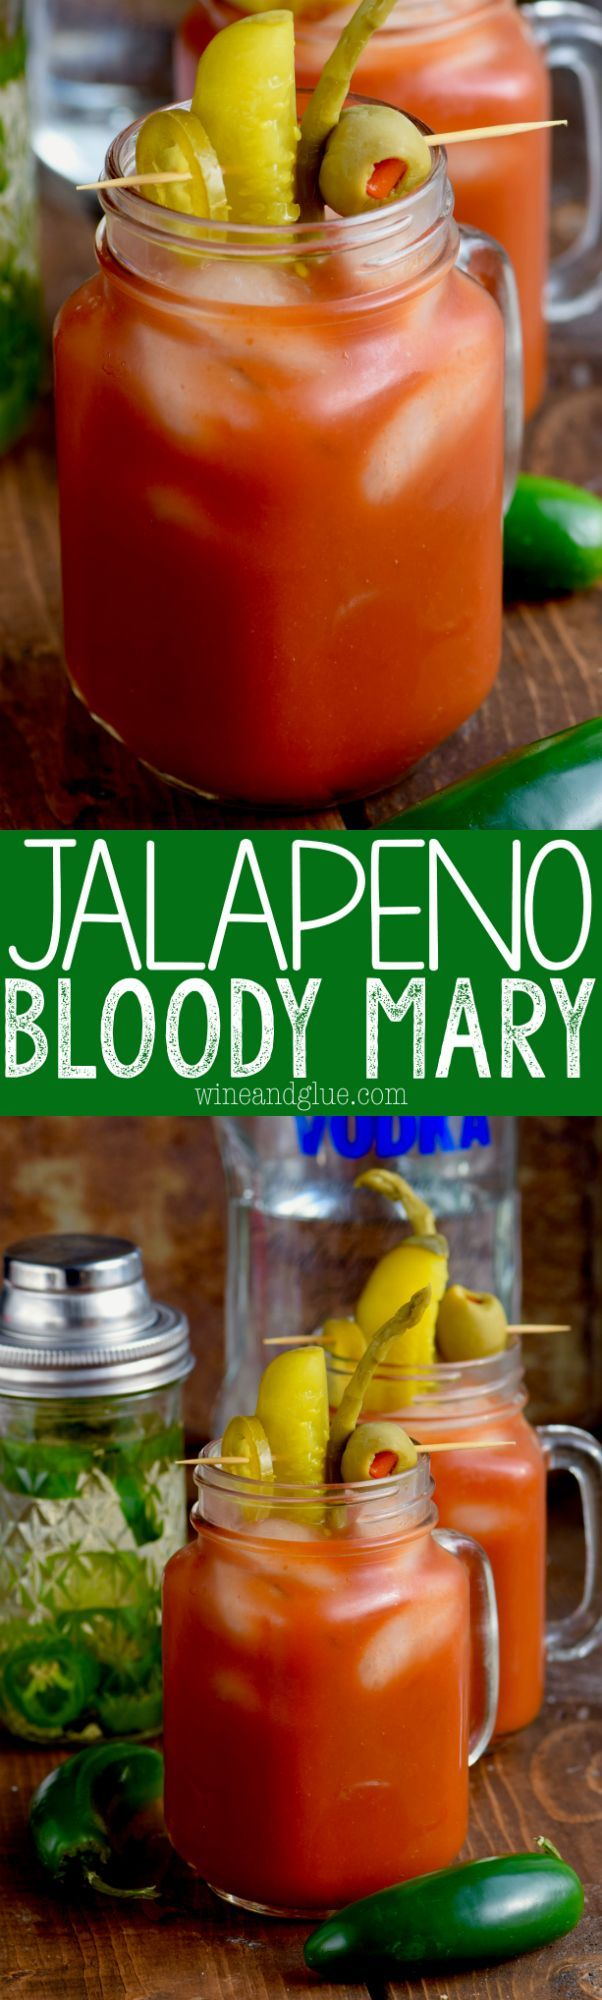 Jalapeño Infused Bloody Mary   The delicious smoky flavor of jalapeños in vodka makes this bloody mary recipe a must make for any brunch!